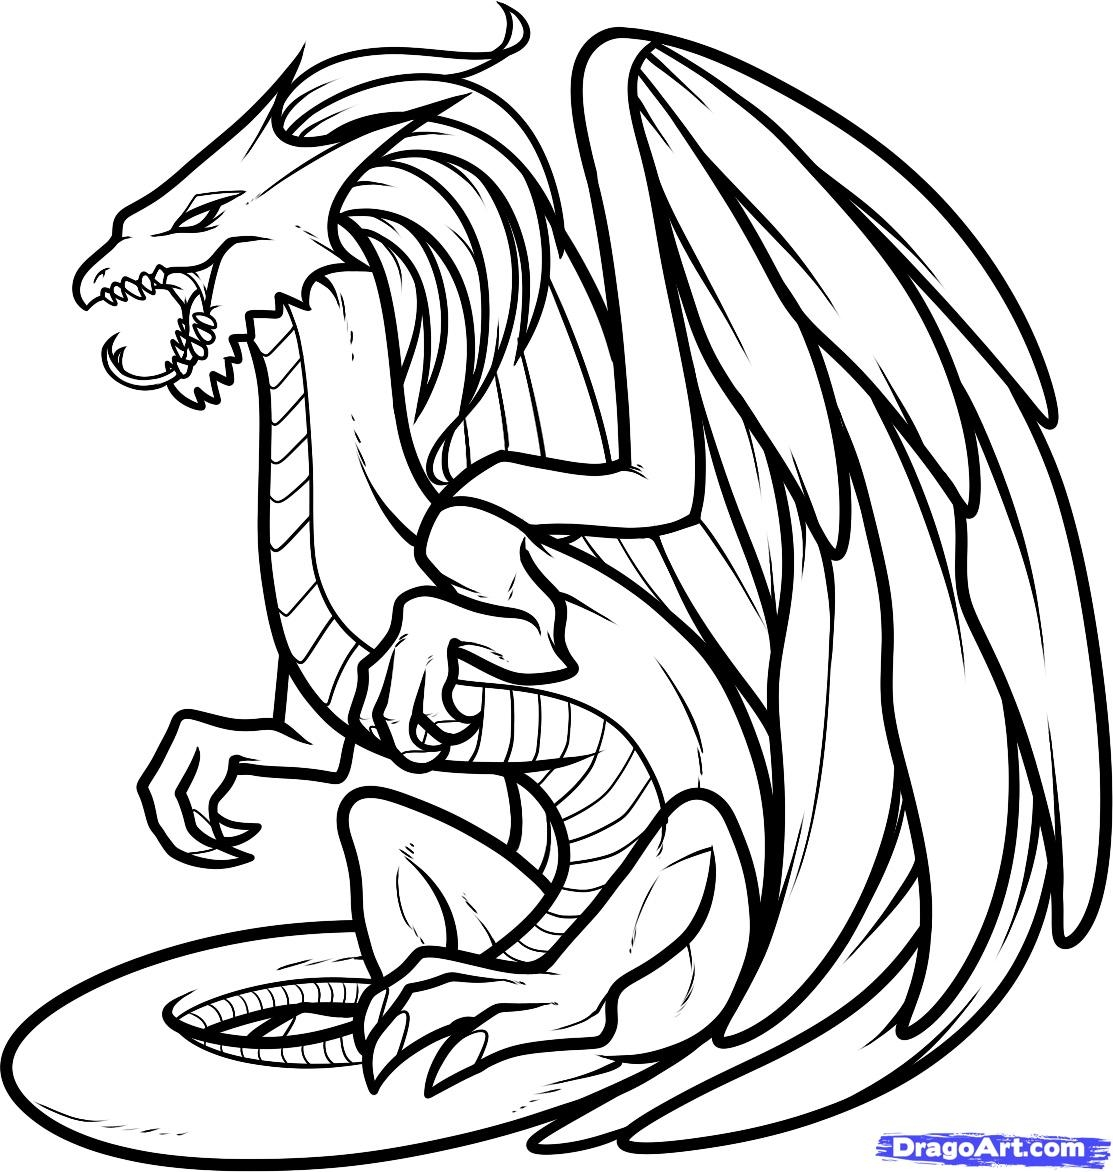 realistic dragon coloring pages - dragon coloring pages realistic